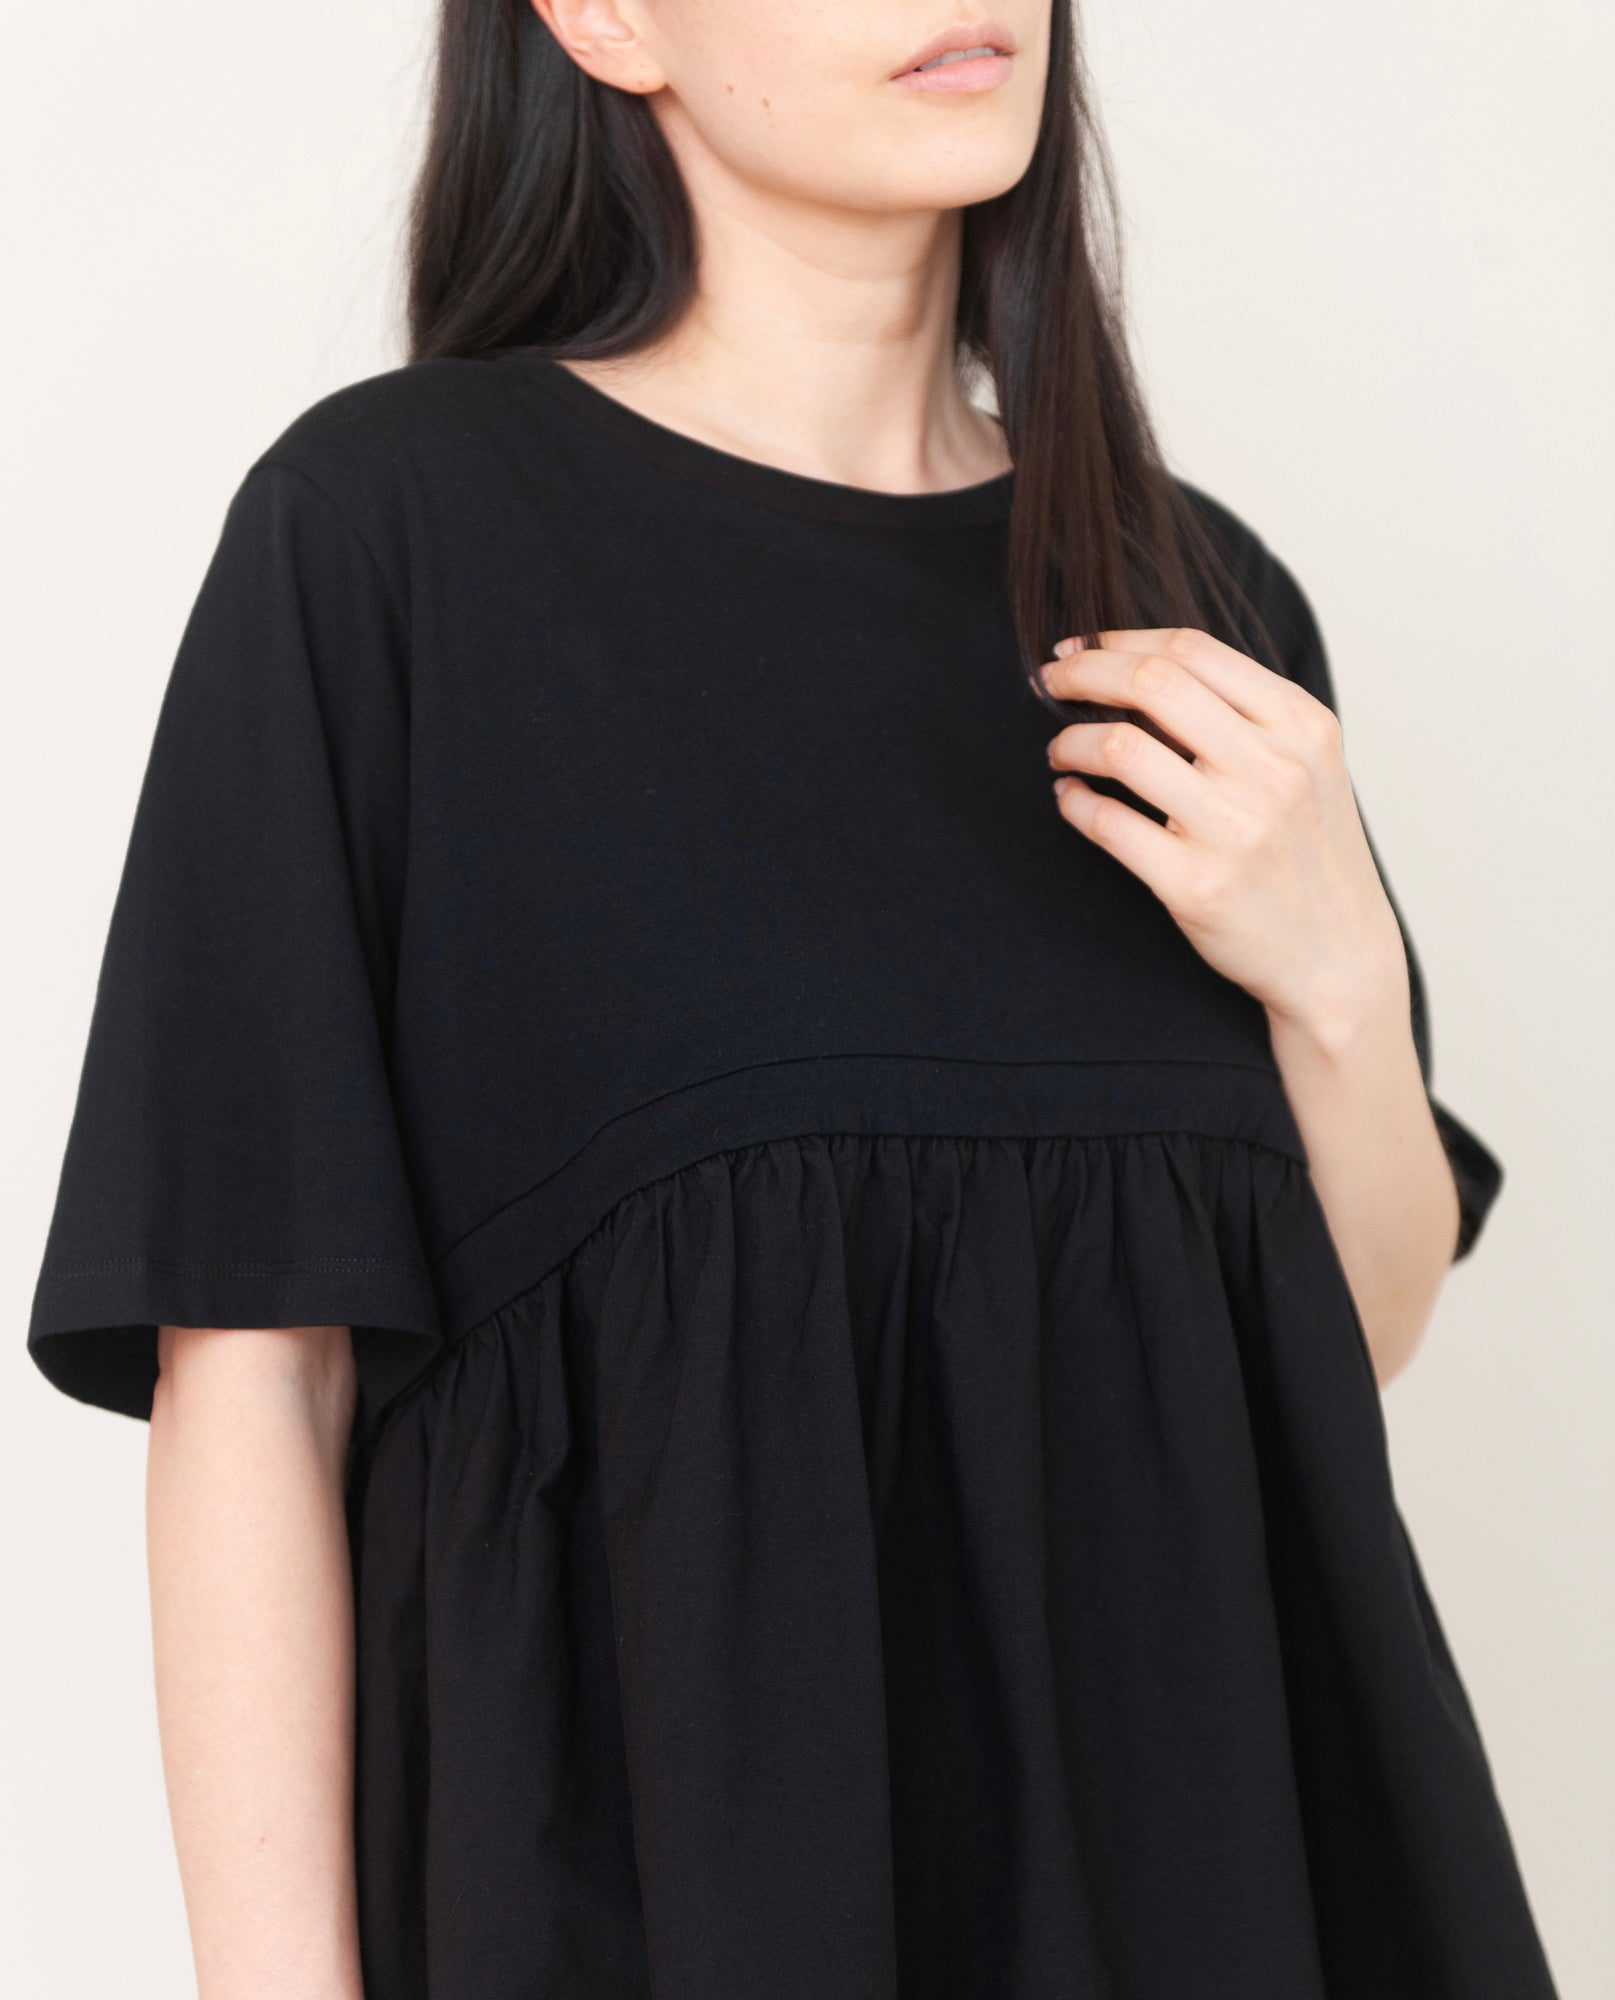 DOROTHY Organic Cotton Top In Black